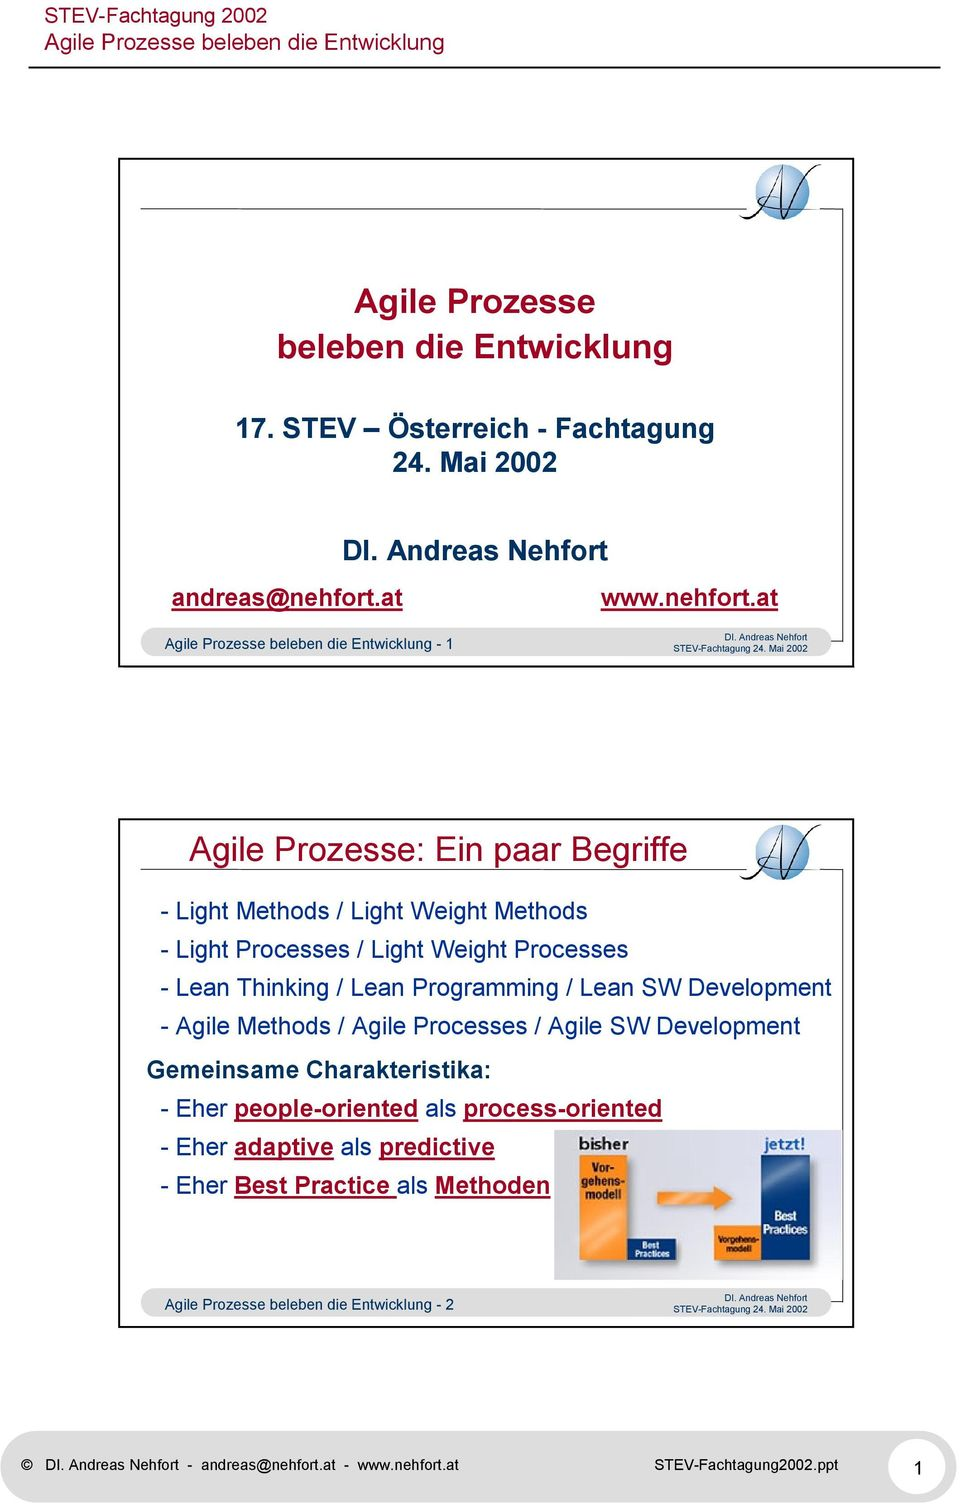 at Agile Prozesse: Ein paar Begriffe - Light Methods / Light Weight Methods - Light Processes / Light Weight Processes - Lean Thinking /